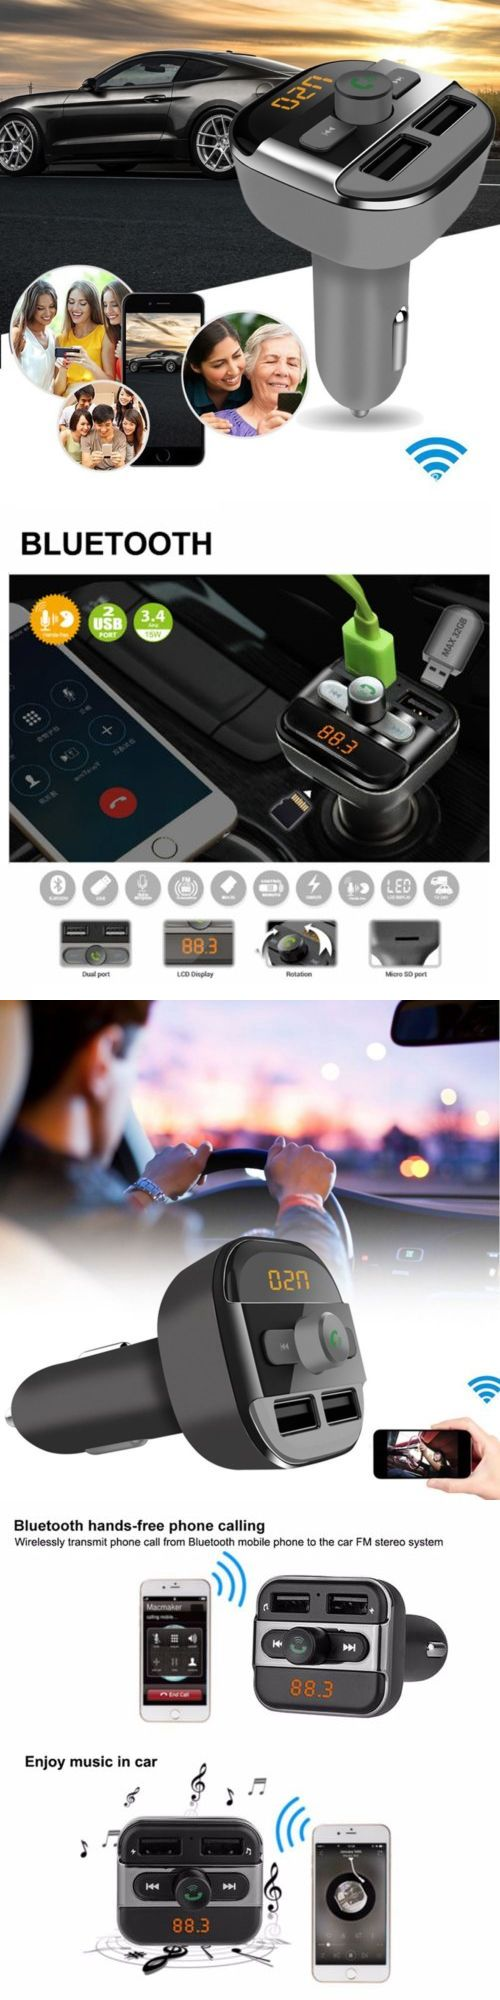 FM Transmitters: New Bluetooth Car Kit Wireless Fm Transmitter Dual Usb Charger Audio Mp3 Player -> BUY IT NOW ONLY: $112.99 on eBay!